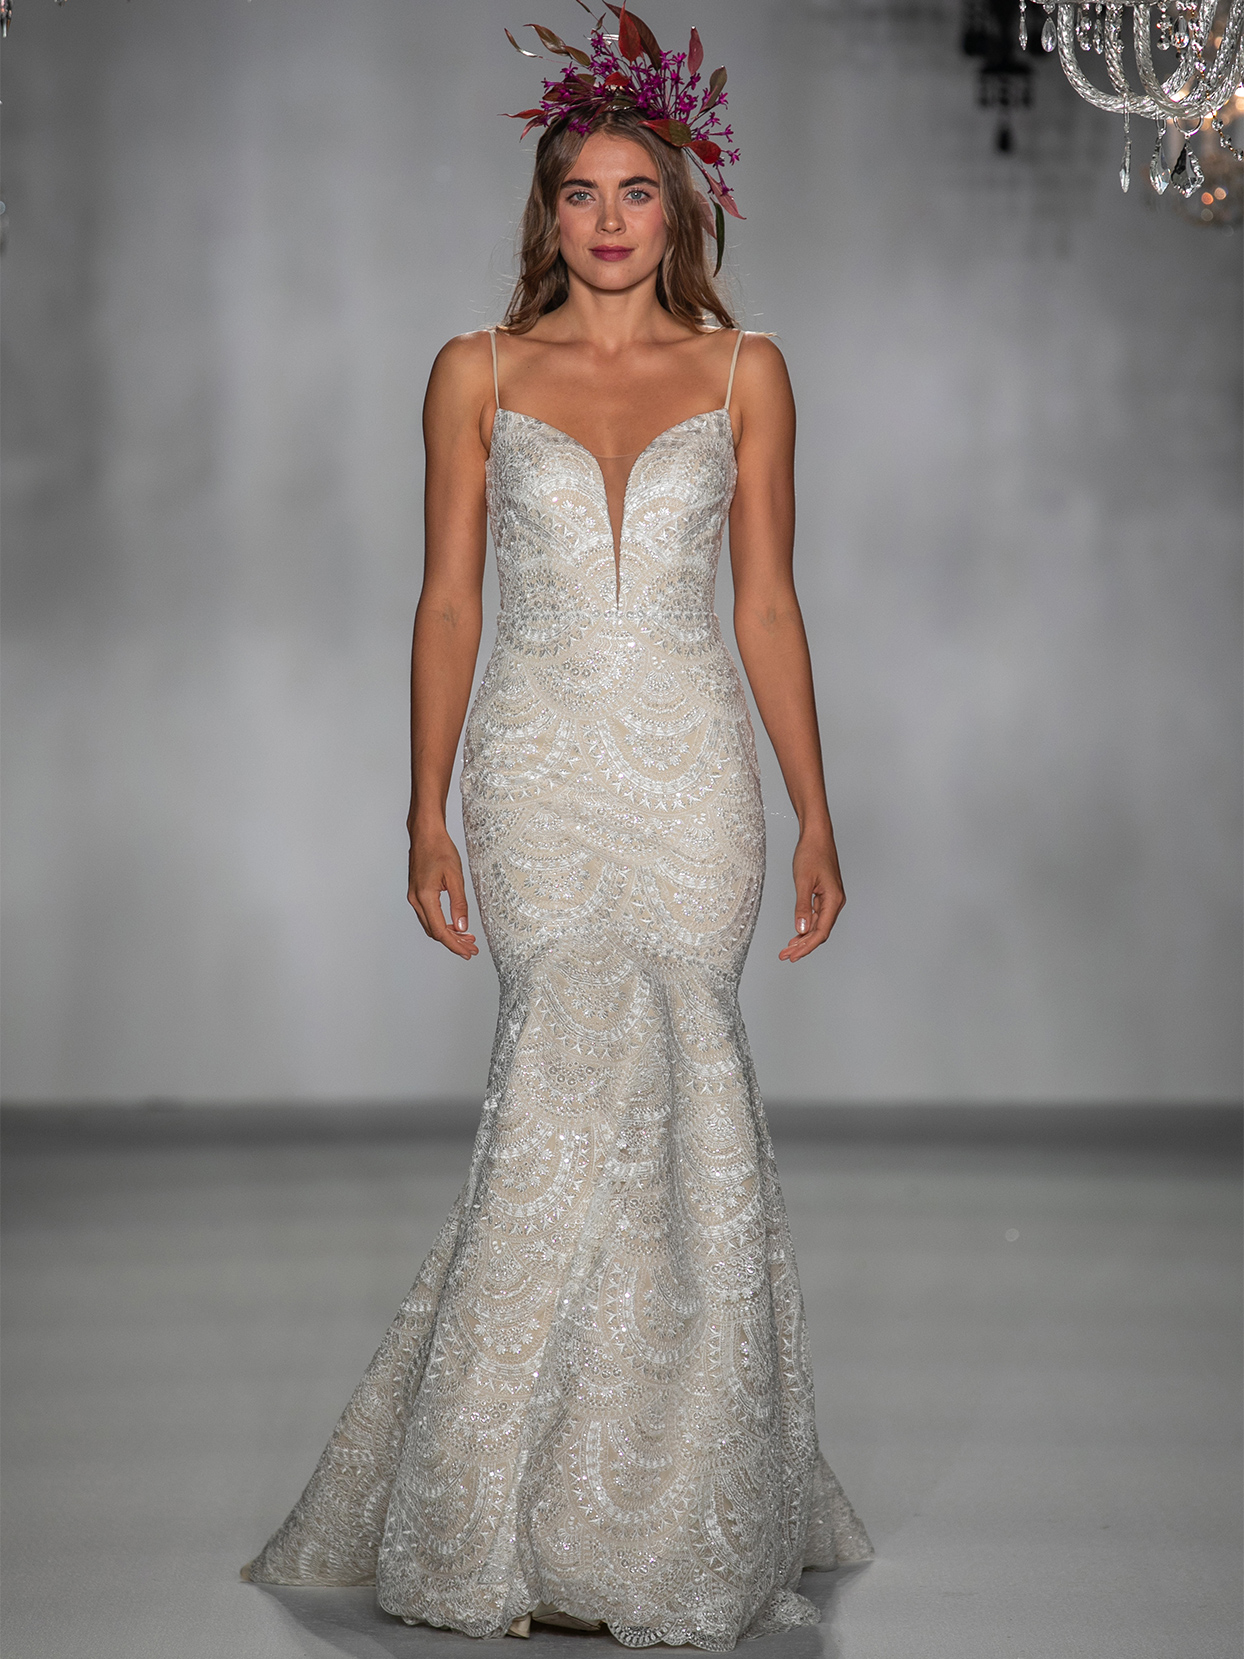 anne barge cream lace mermaid wedding dress fall 2020